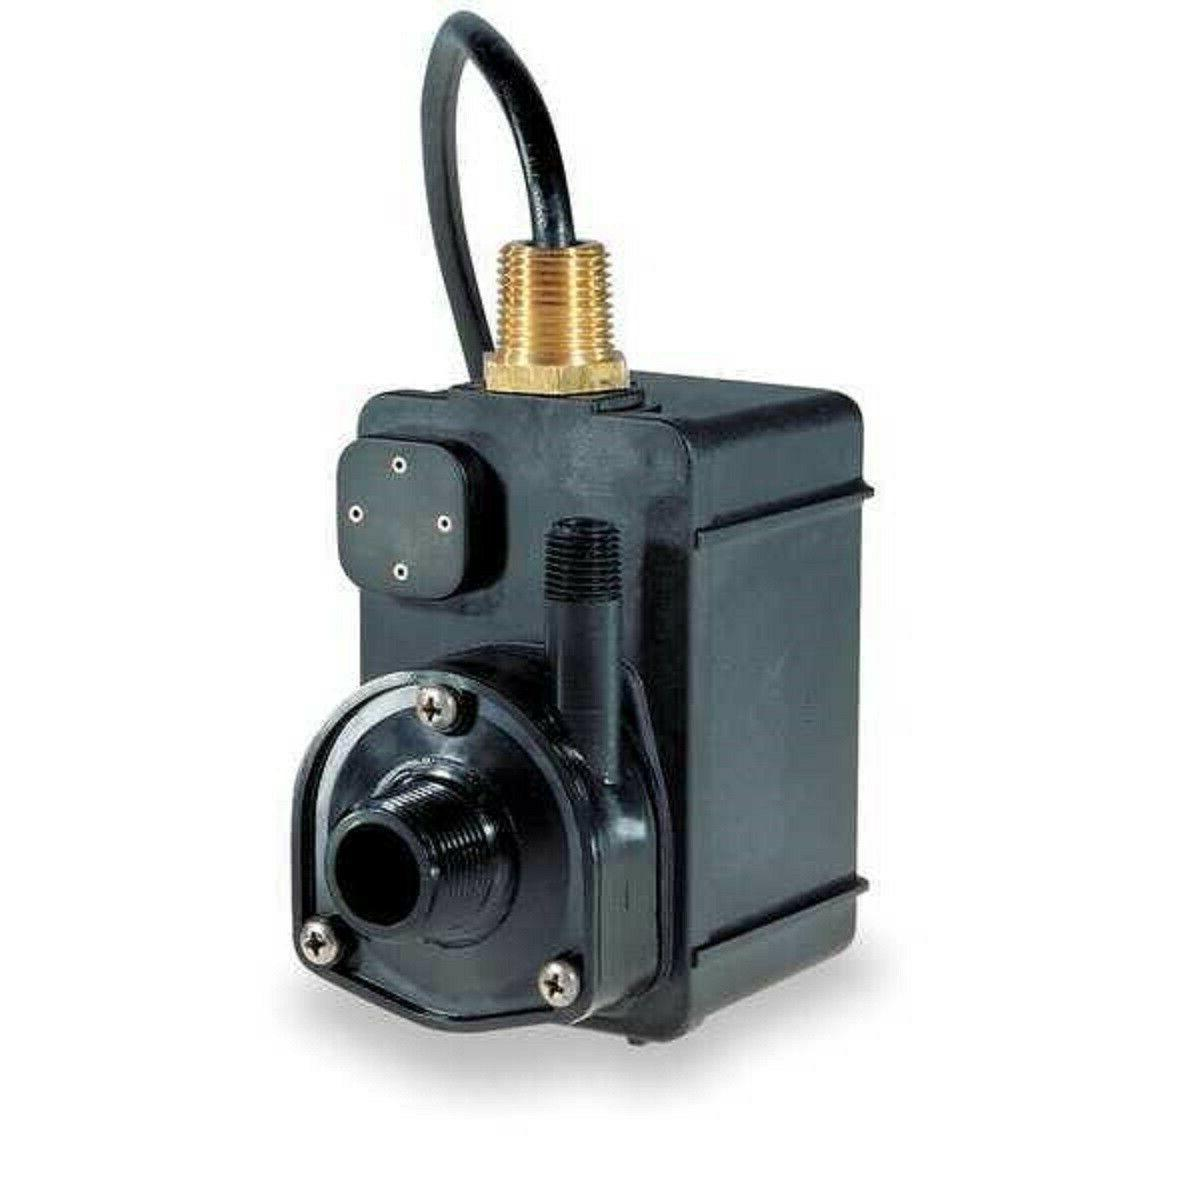 submersible parts washer pump 6ft cord 300